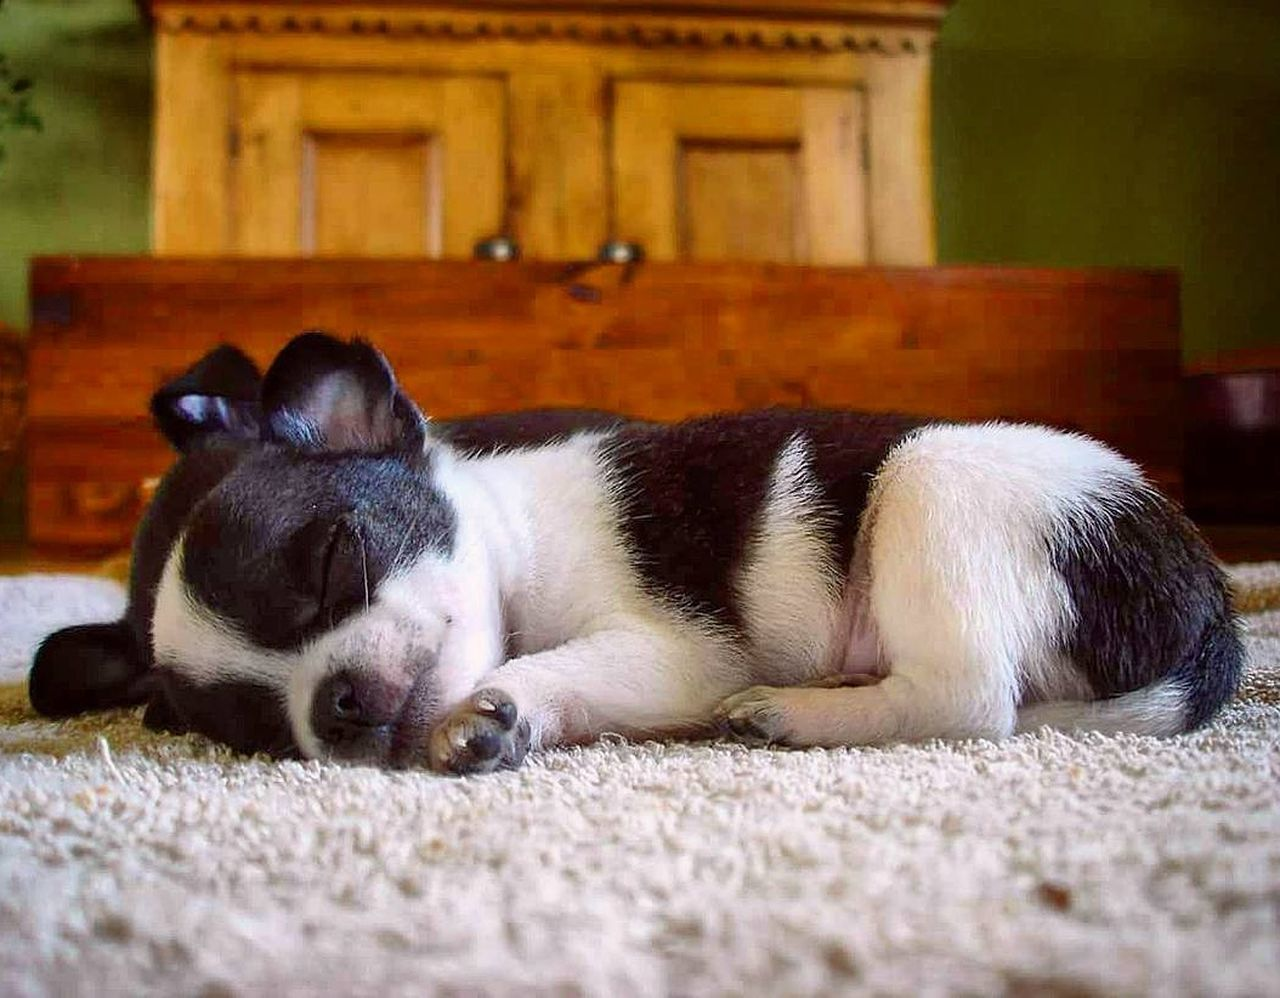 Little Angel Animal Themes One Animal Mammal Domestic Animals Pets Relaxation Sleeping No People Lying Down Close-up Indoors  Dog❤ Dogs Of EyeEm Chihuahuaoftheday Chihuahualovers Chihuahua Dogs Dog Animal Eyemdog Dogslife Dog Photography Pet Furry Friends Doglovers chihuahua